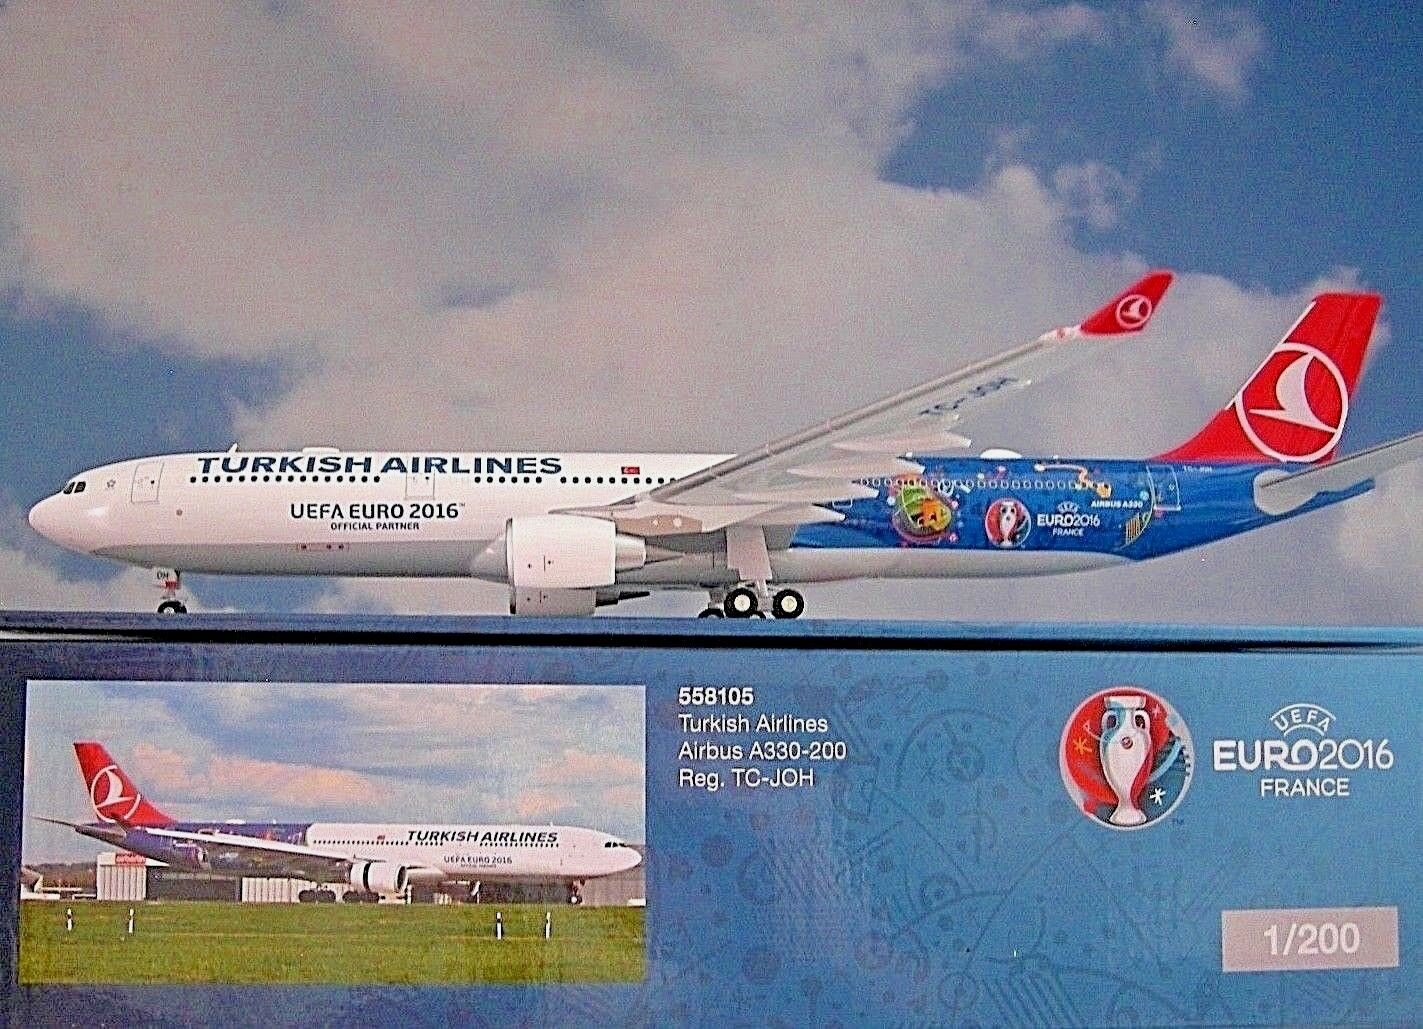 HERPA wings 1:200 Airbus a330-200 turkish Airlines tc-dépenses em 2016 558105 | Shop